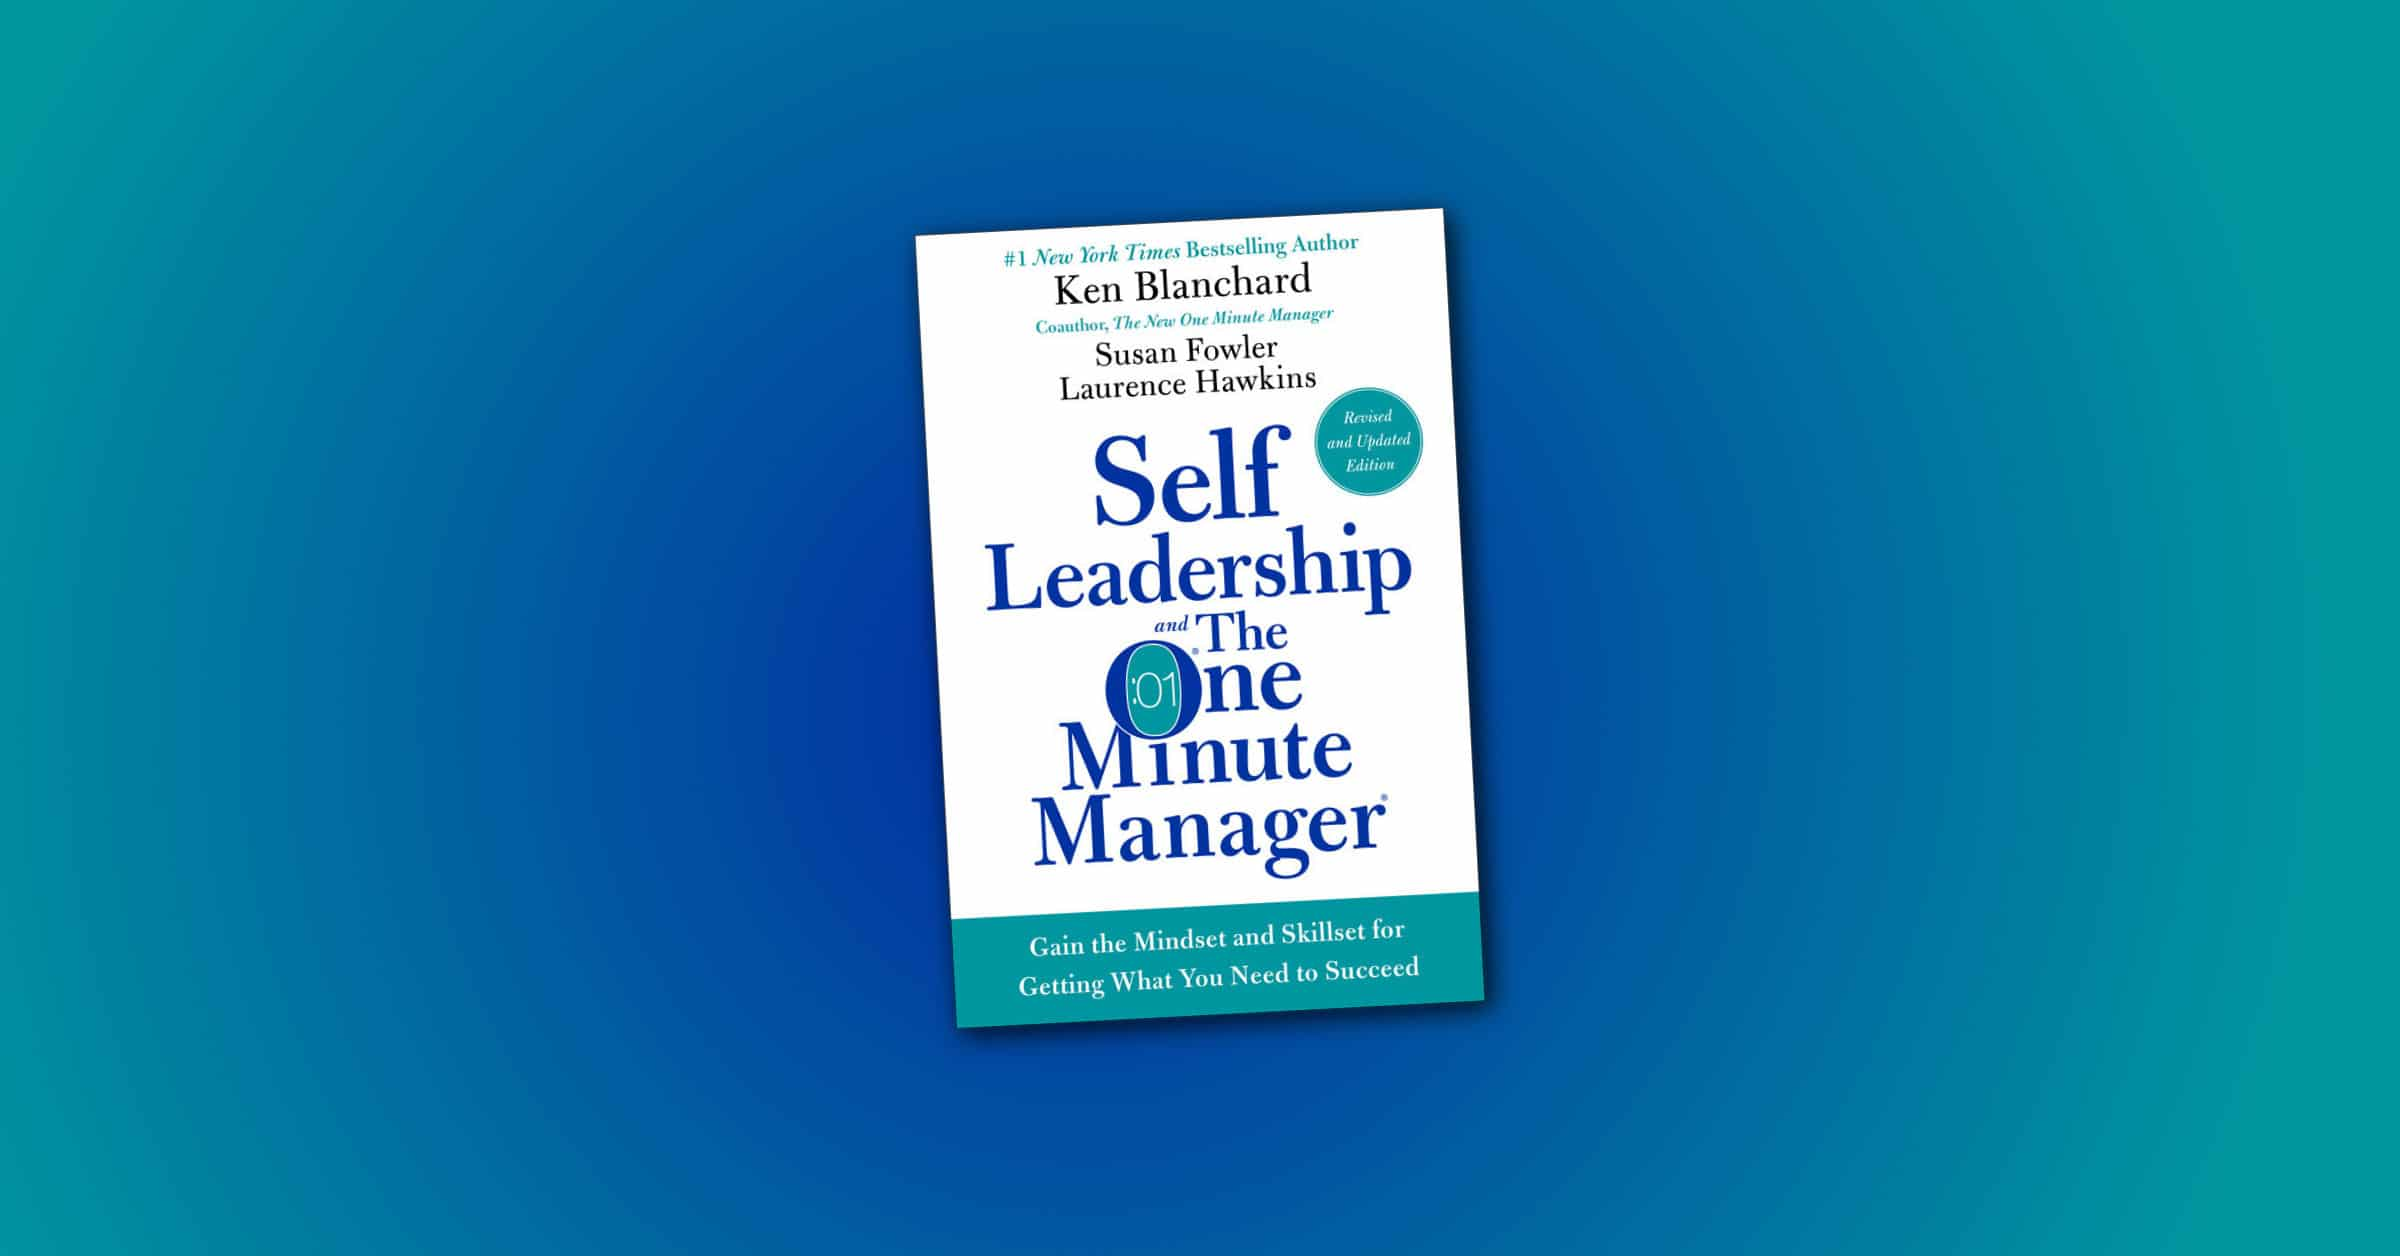 Self-Leadership and the One-Minute Manager